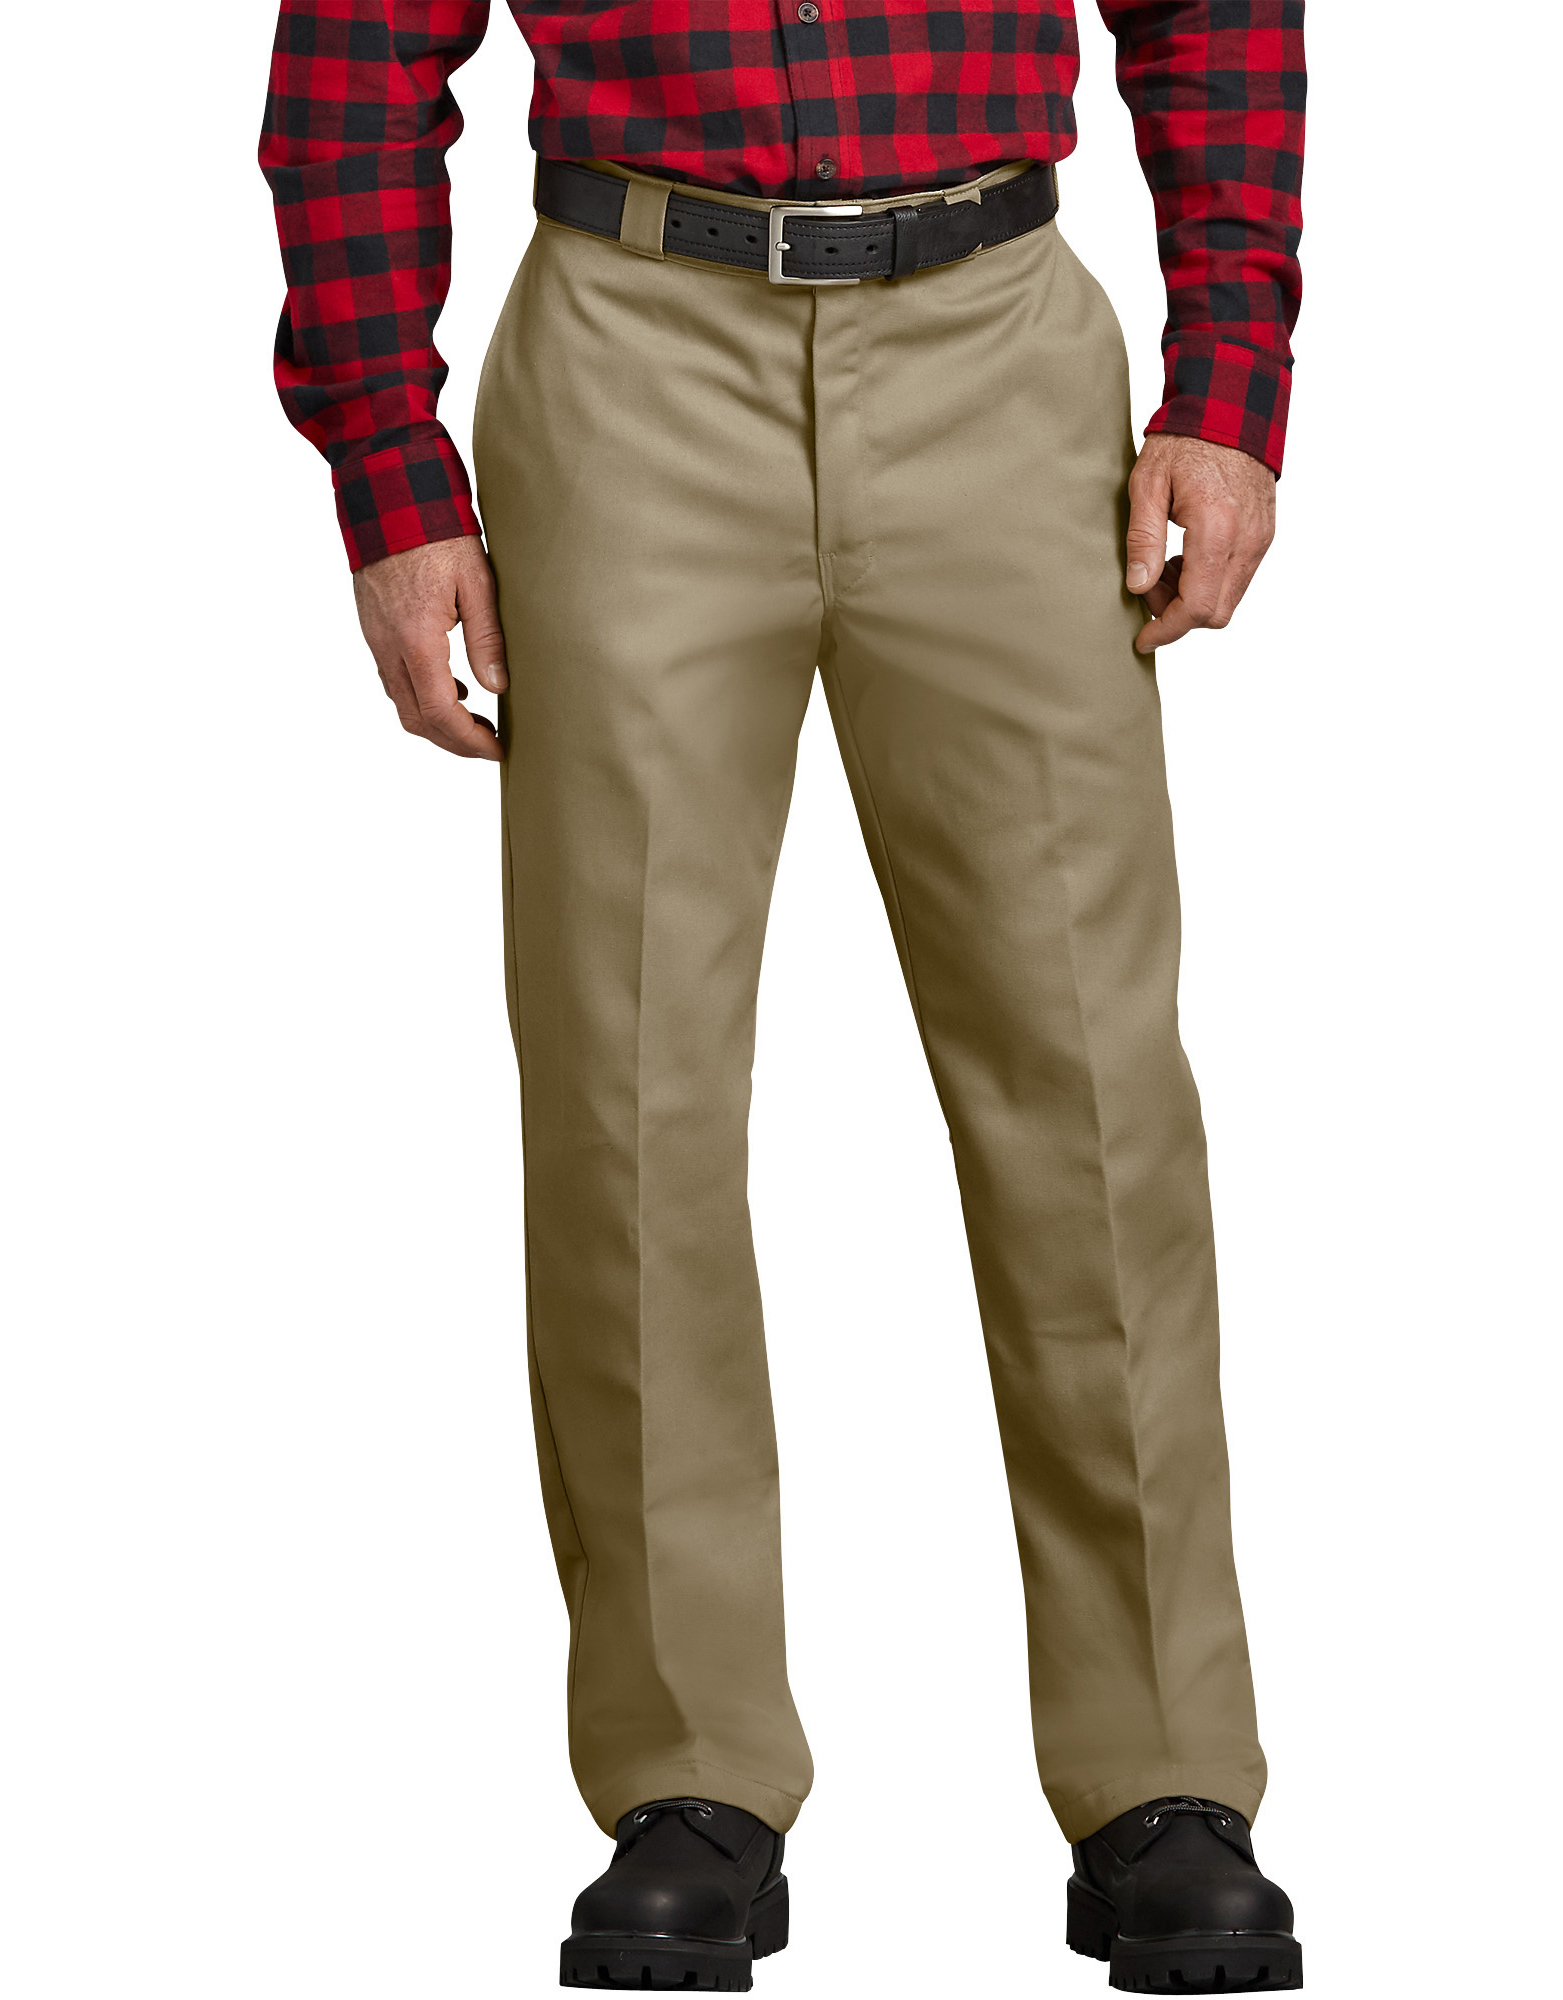 Relaxed Fit Flannel Lined Work Pants - Military Khaki (KH)